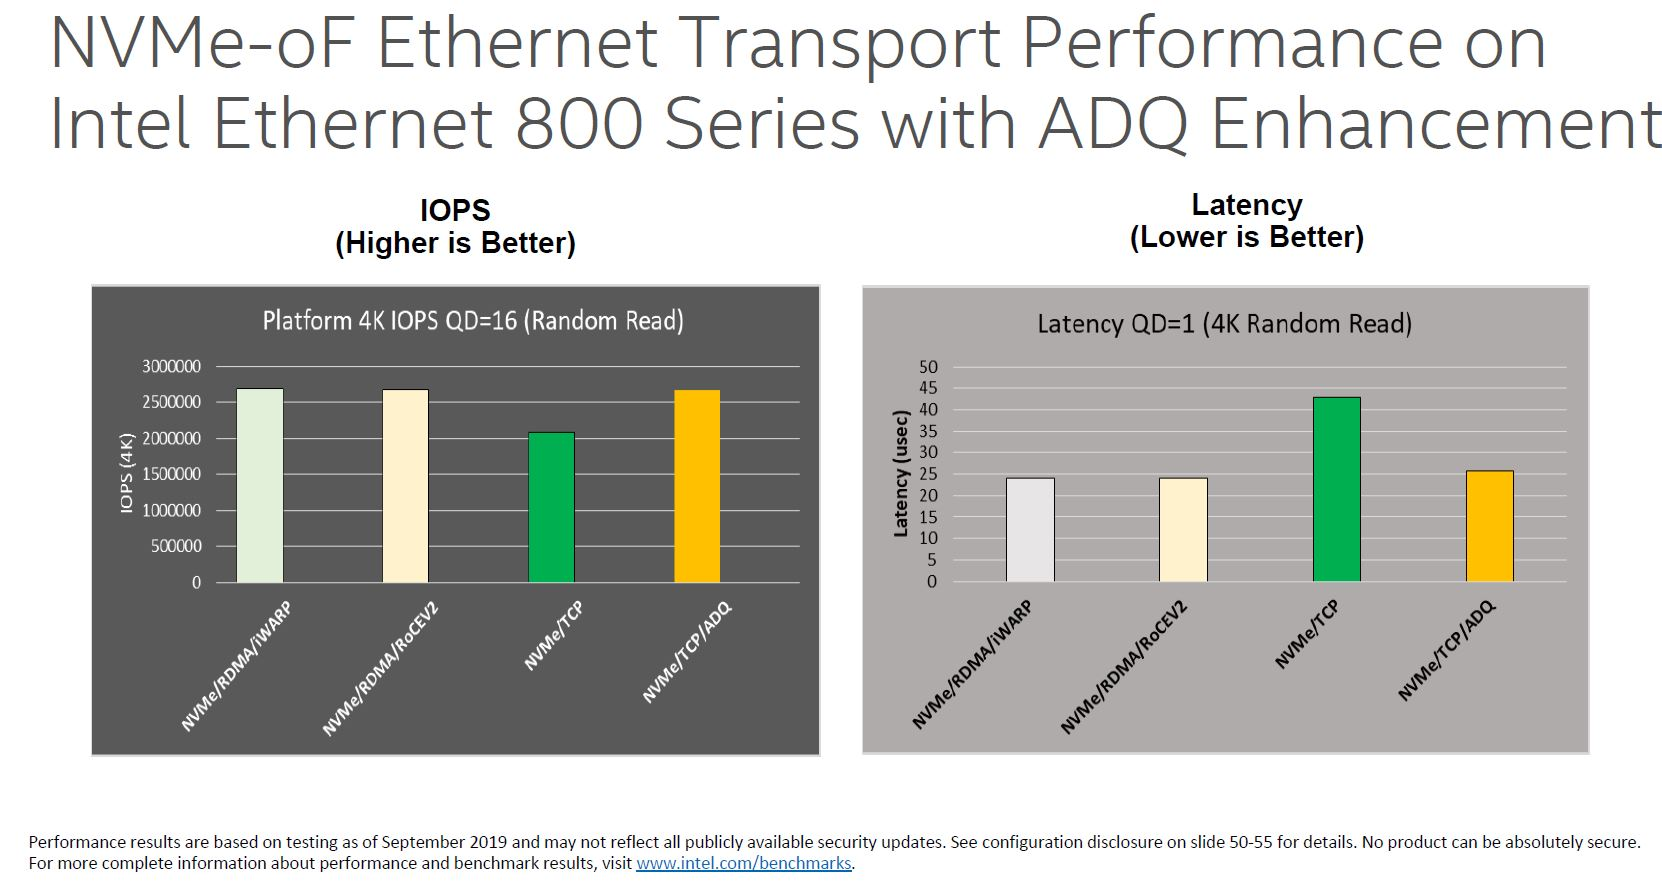 Intel 800 Series NVMeoF ADQ Performance